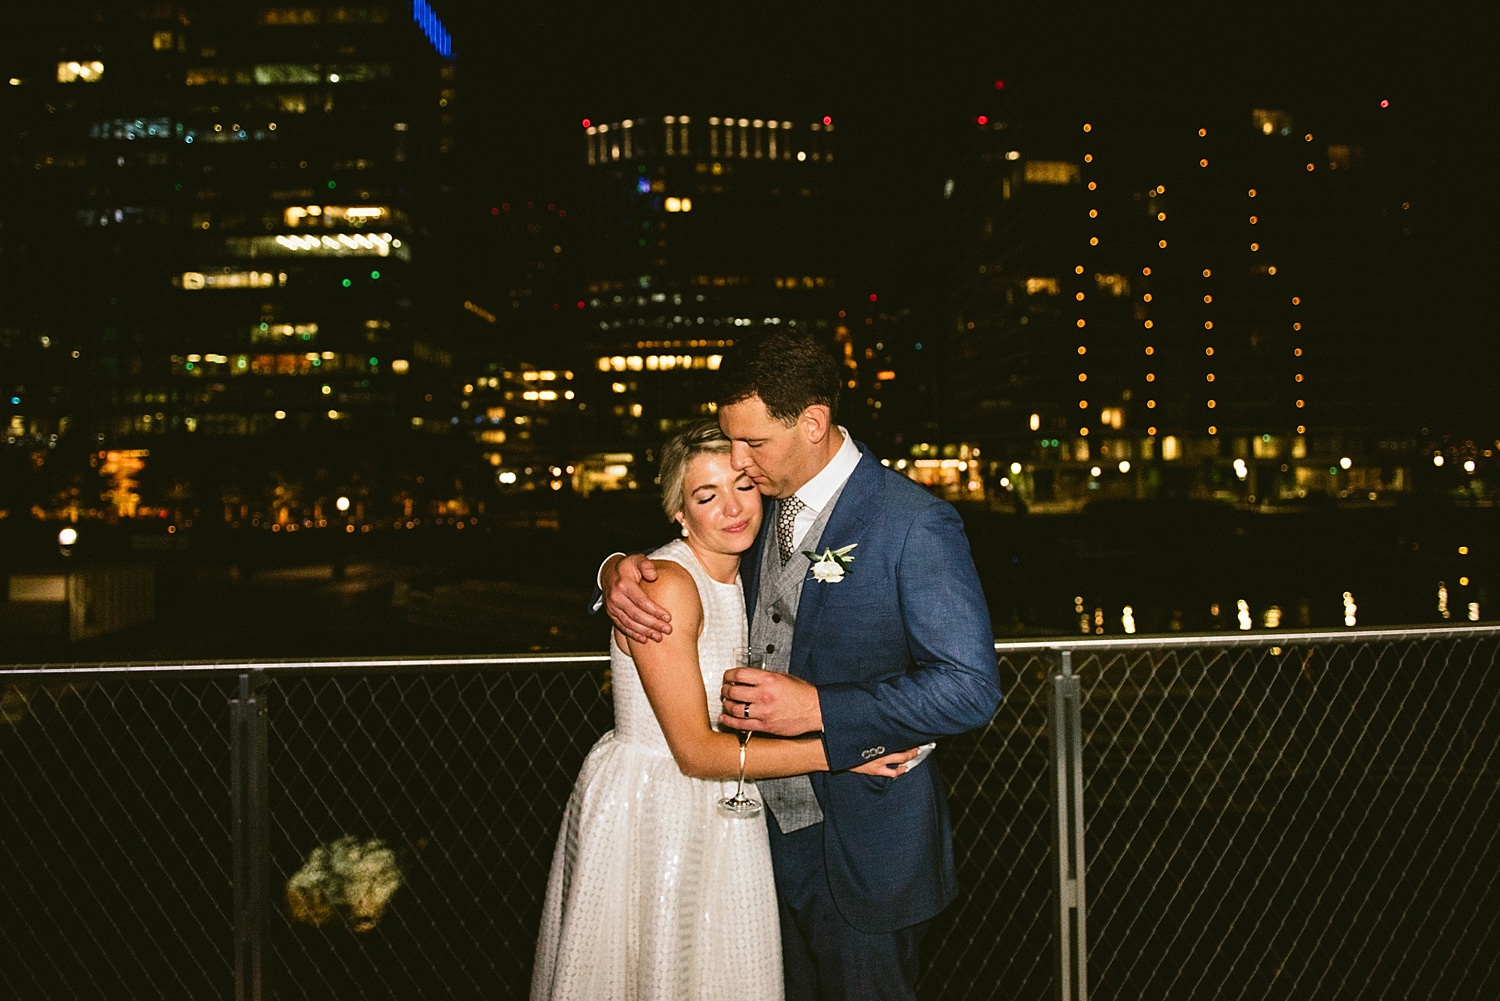 bride and groom with city lights at night